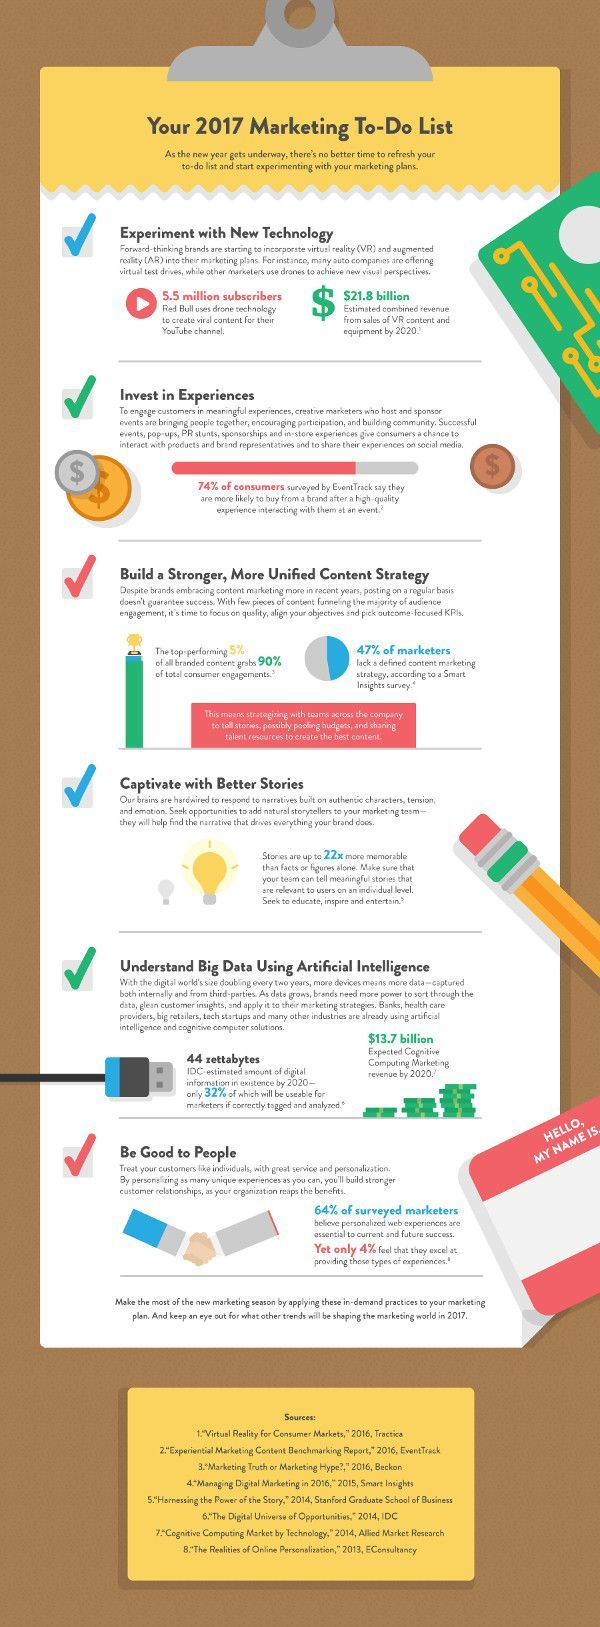 Your 2017 Marketing To-Do List [Infographic] | Digital